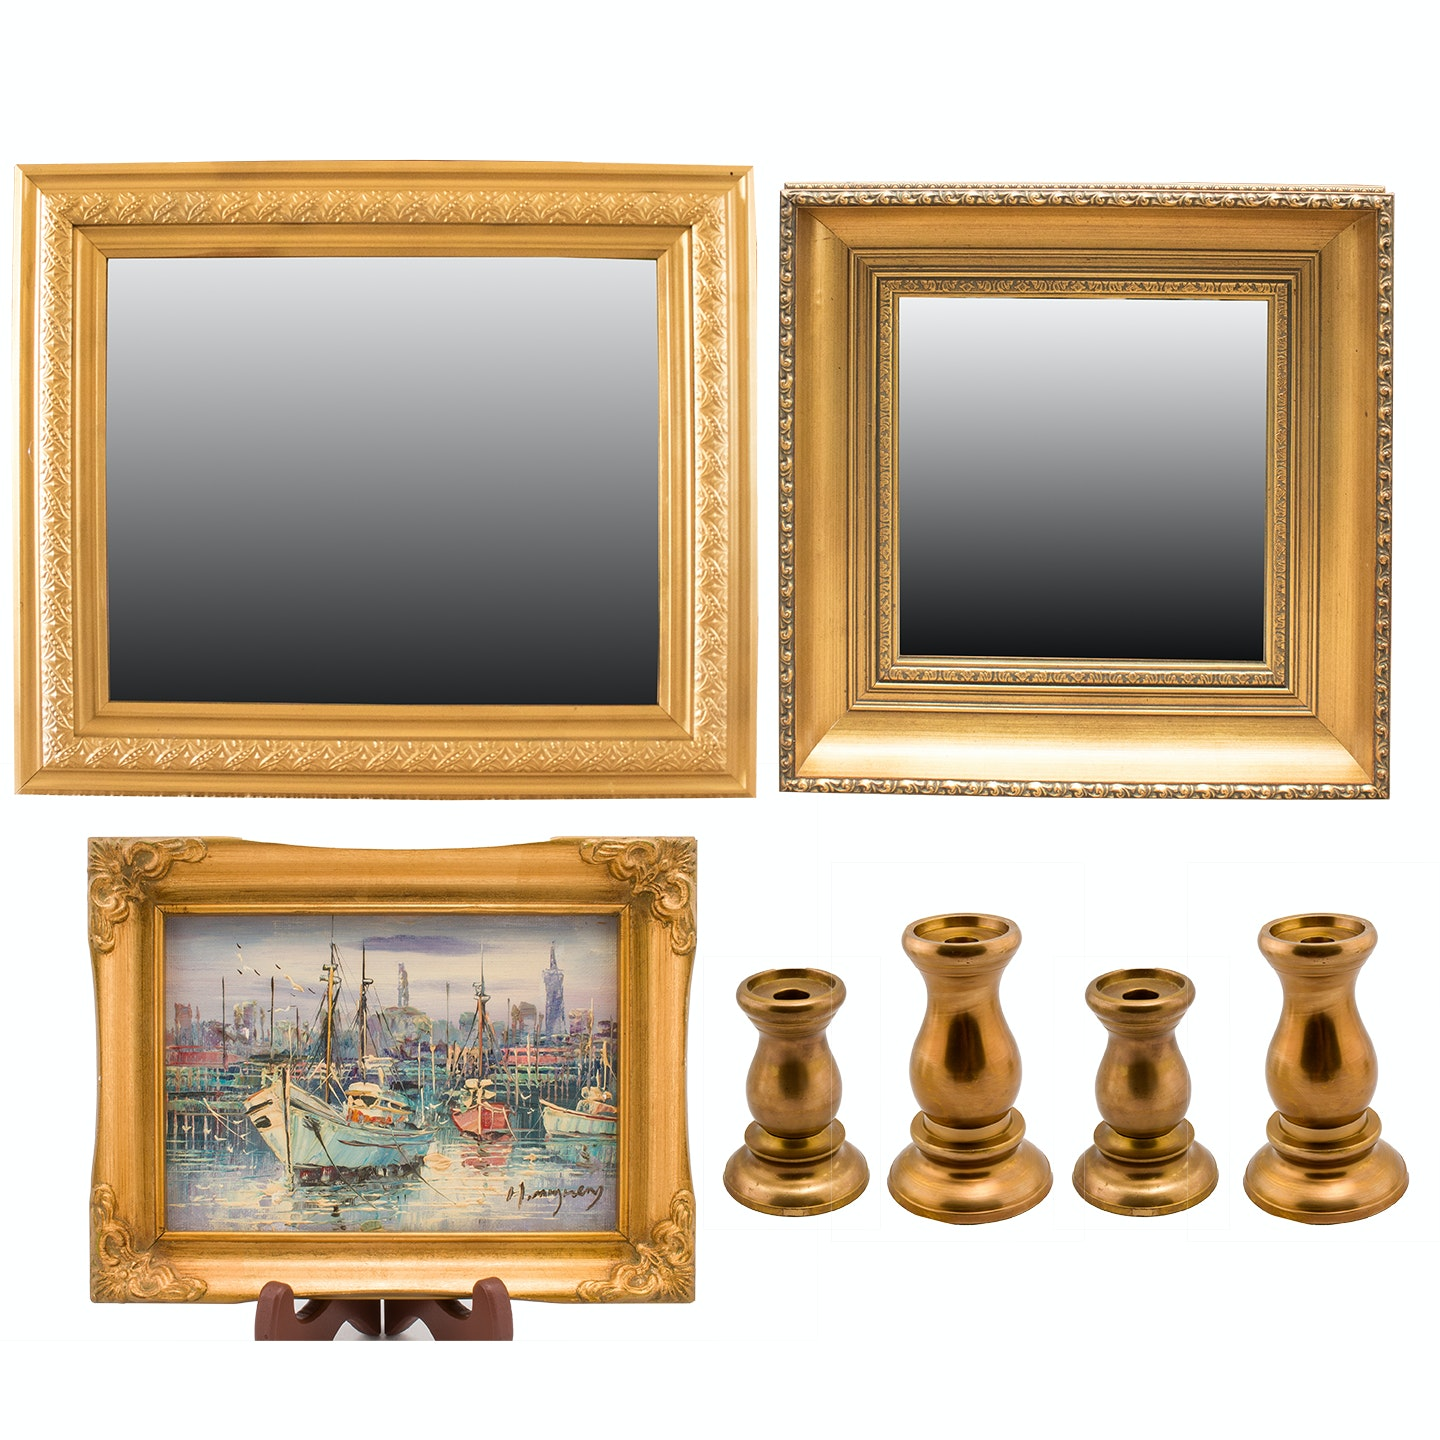 Oil Painting, Wall Mirrors and Brass Decor